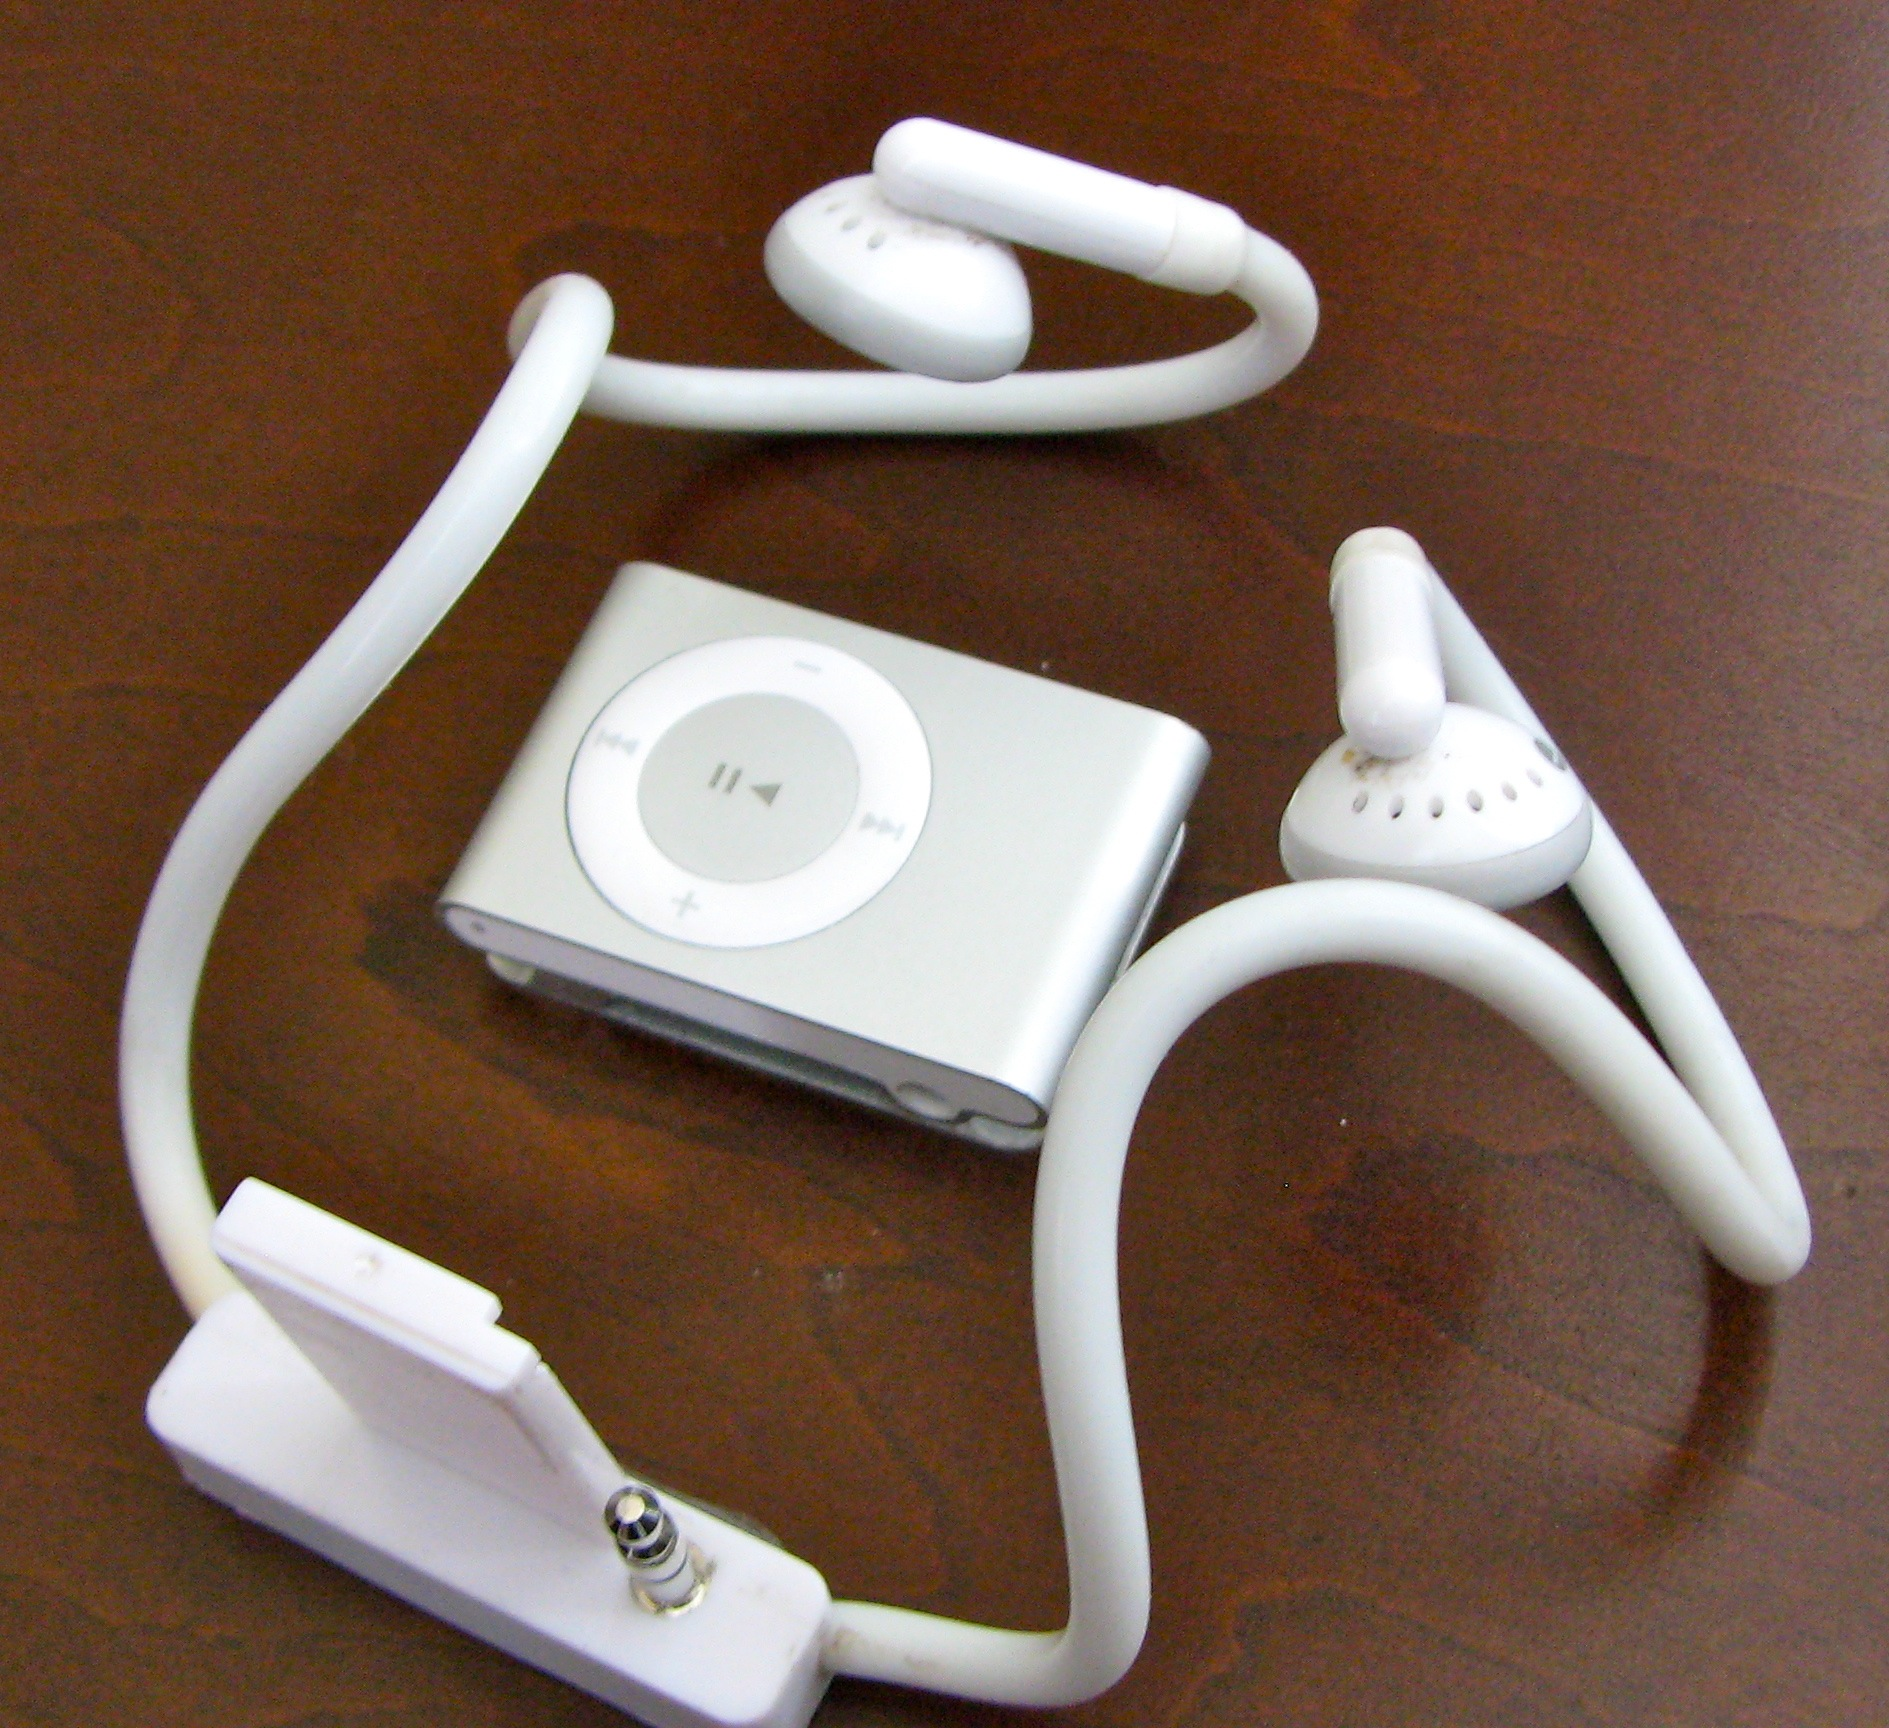 wireless headphone adapter for ipod shuffle image. Black Bedroom Furniture Sets. Home Design Ideas